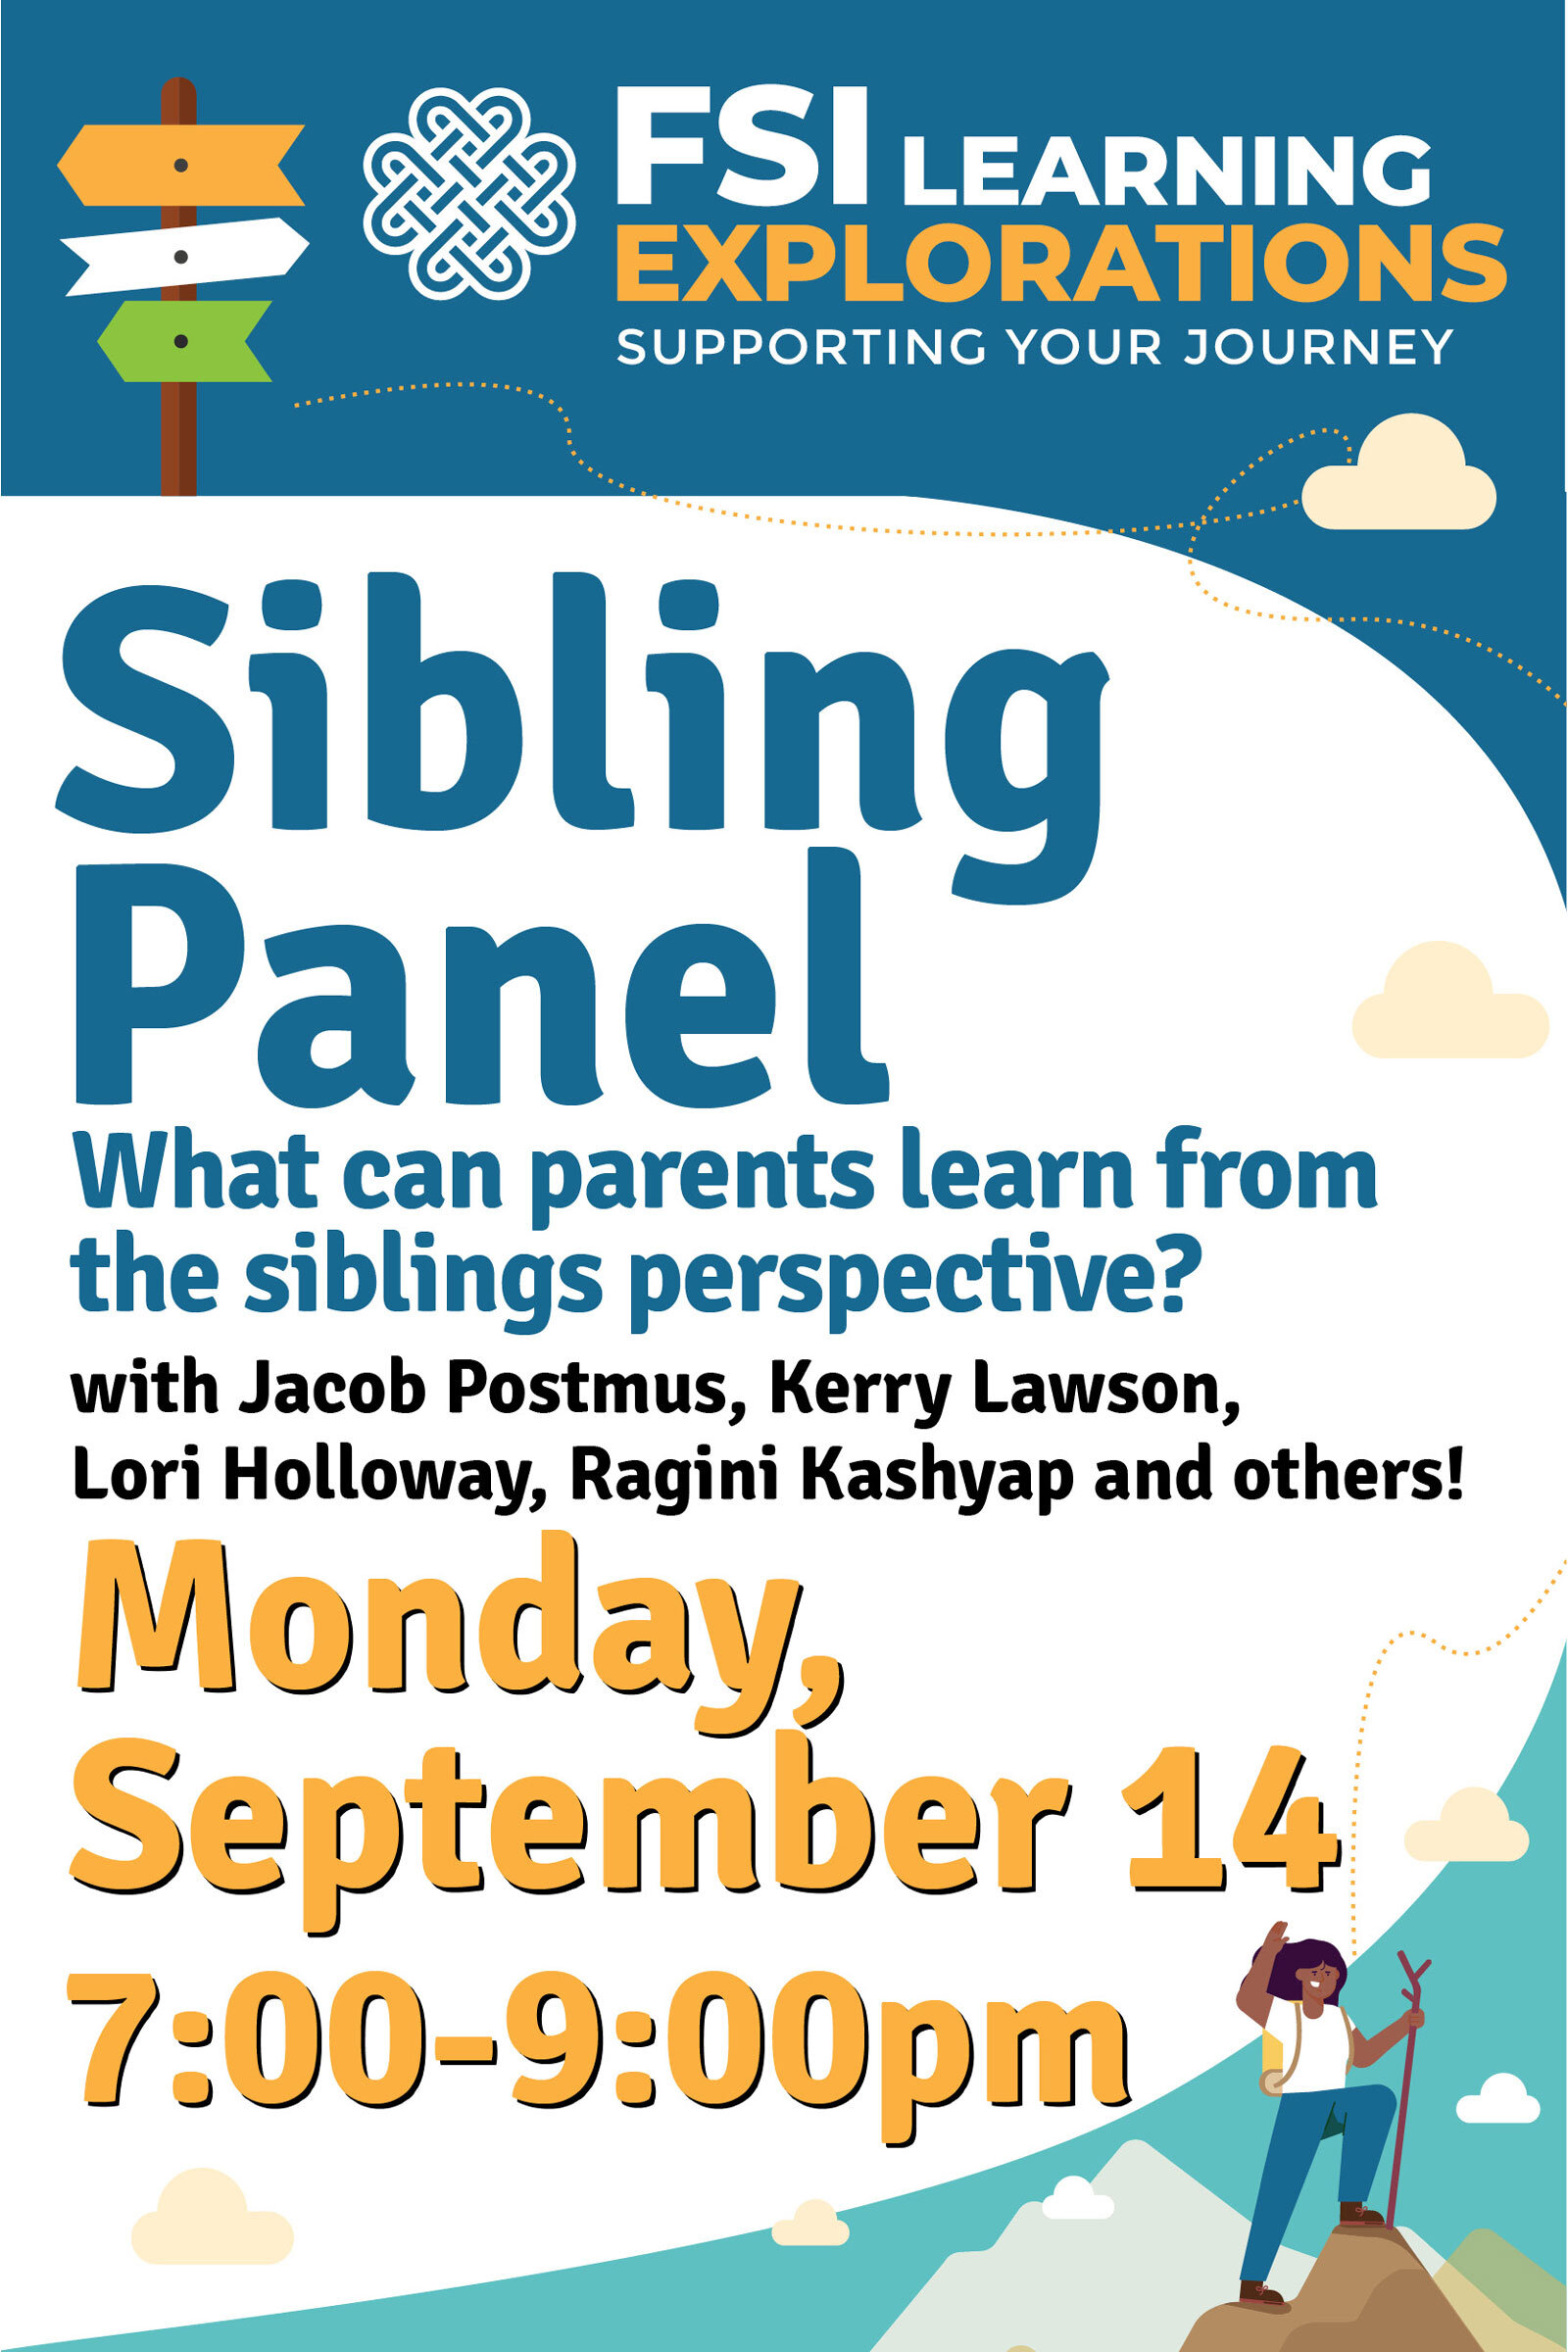 FSI Learning Explorations - Sibling Panel - What can parents learn from the sibling perspectives?